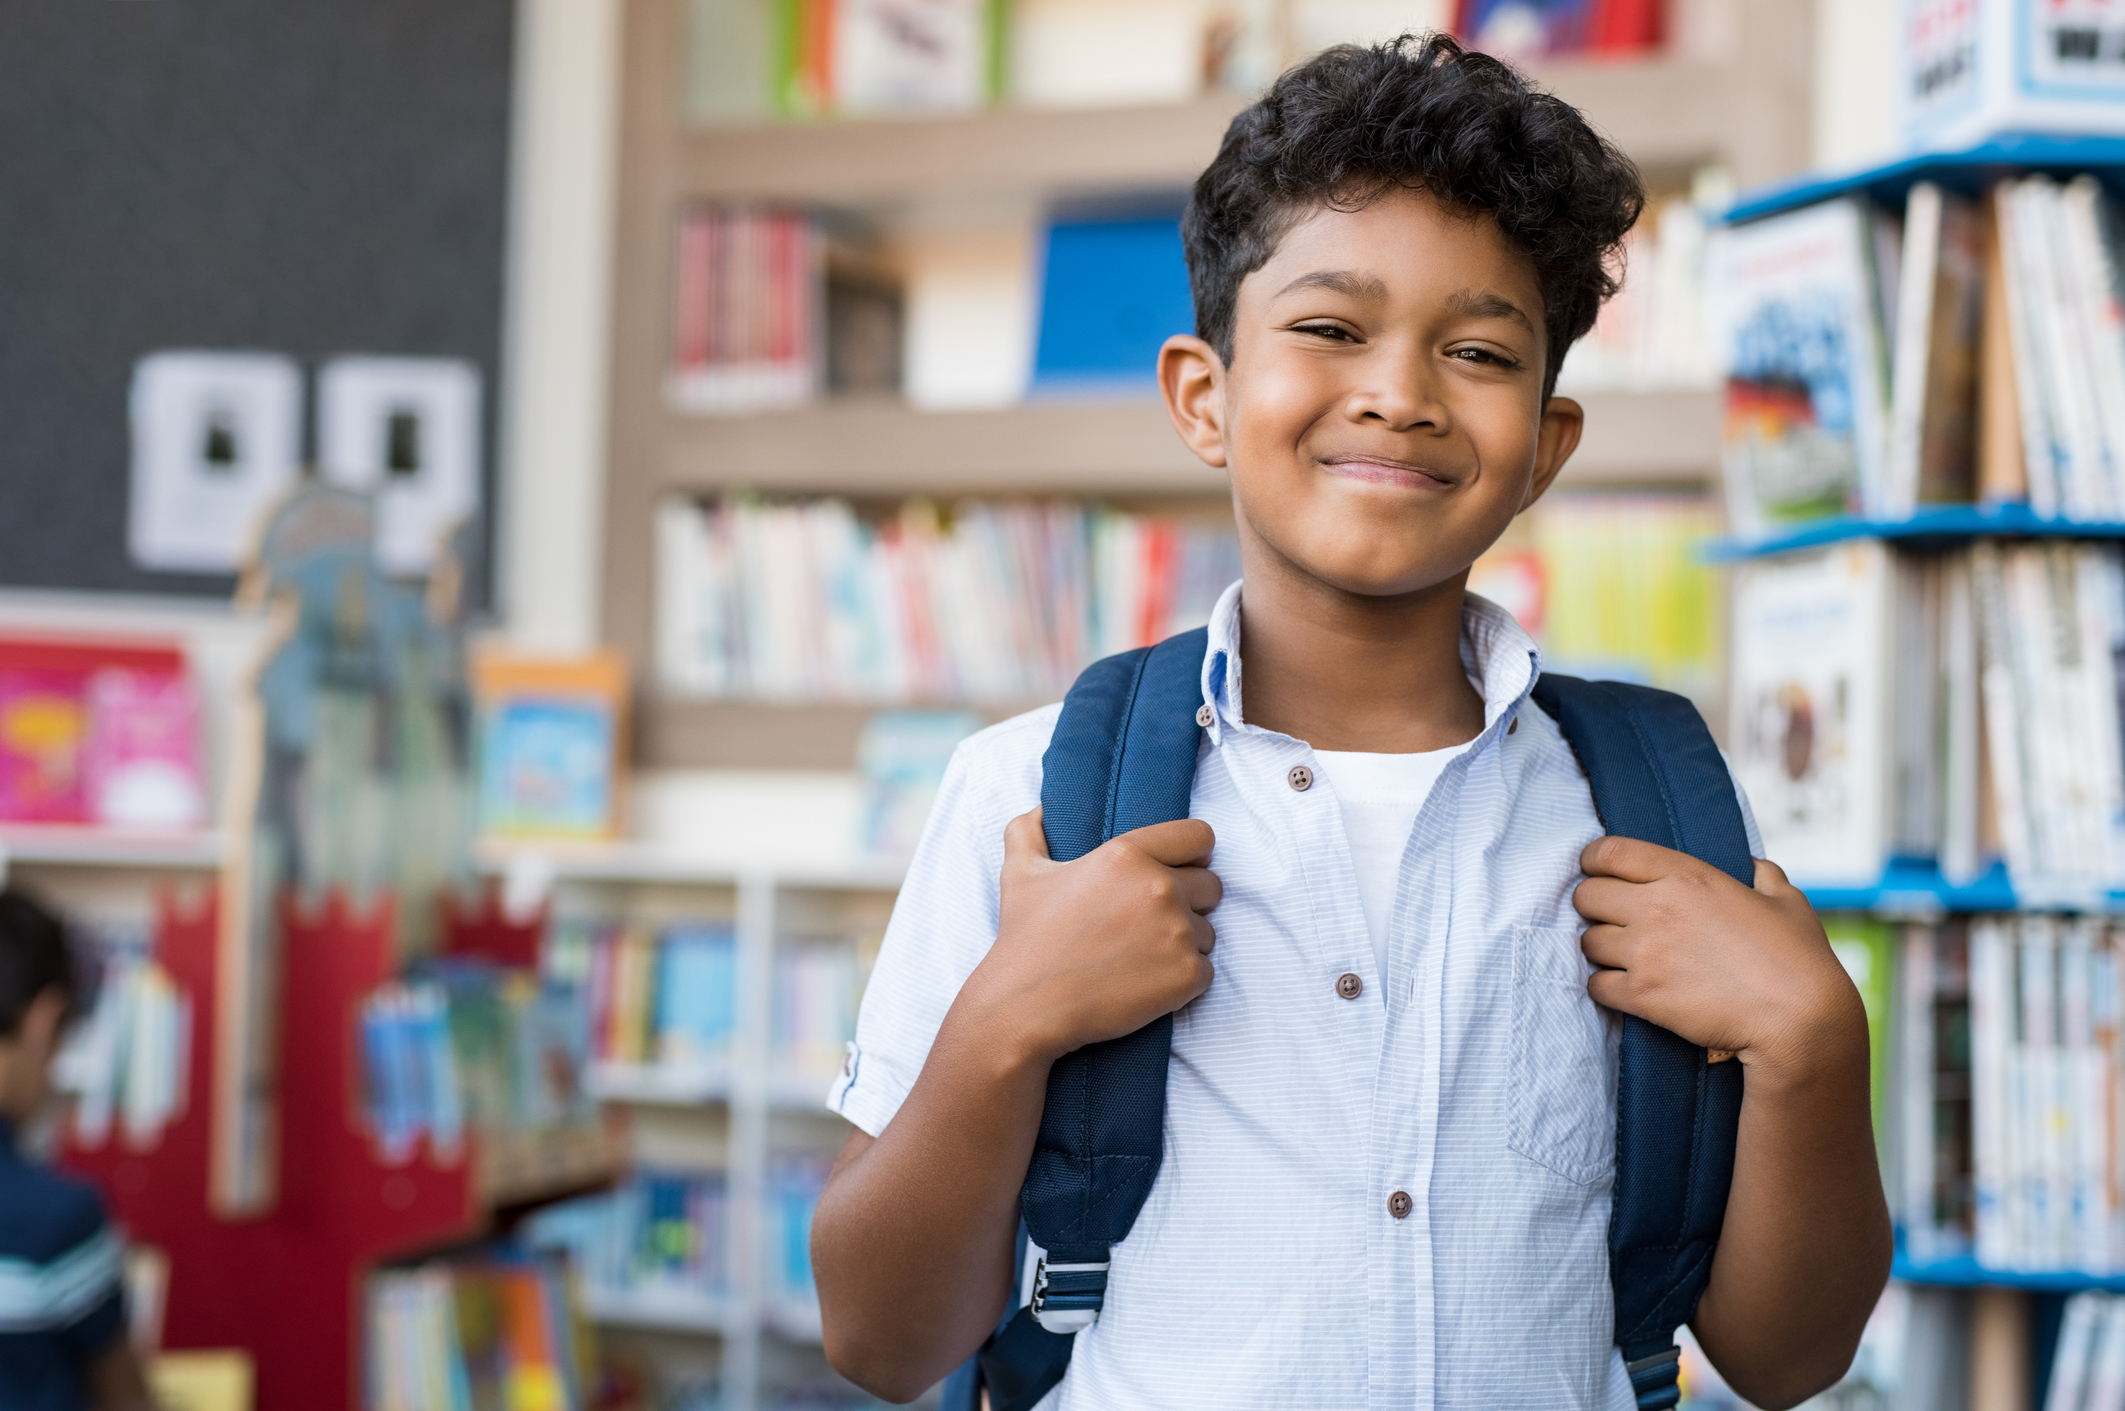 Portrait of smiling Latino boy looking at camera. Young elementary schoolboy carrying backpack and standing in library at school. Cheerful middle eastern child standing with library background.